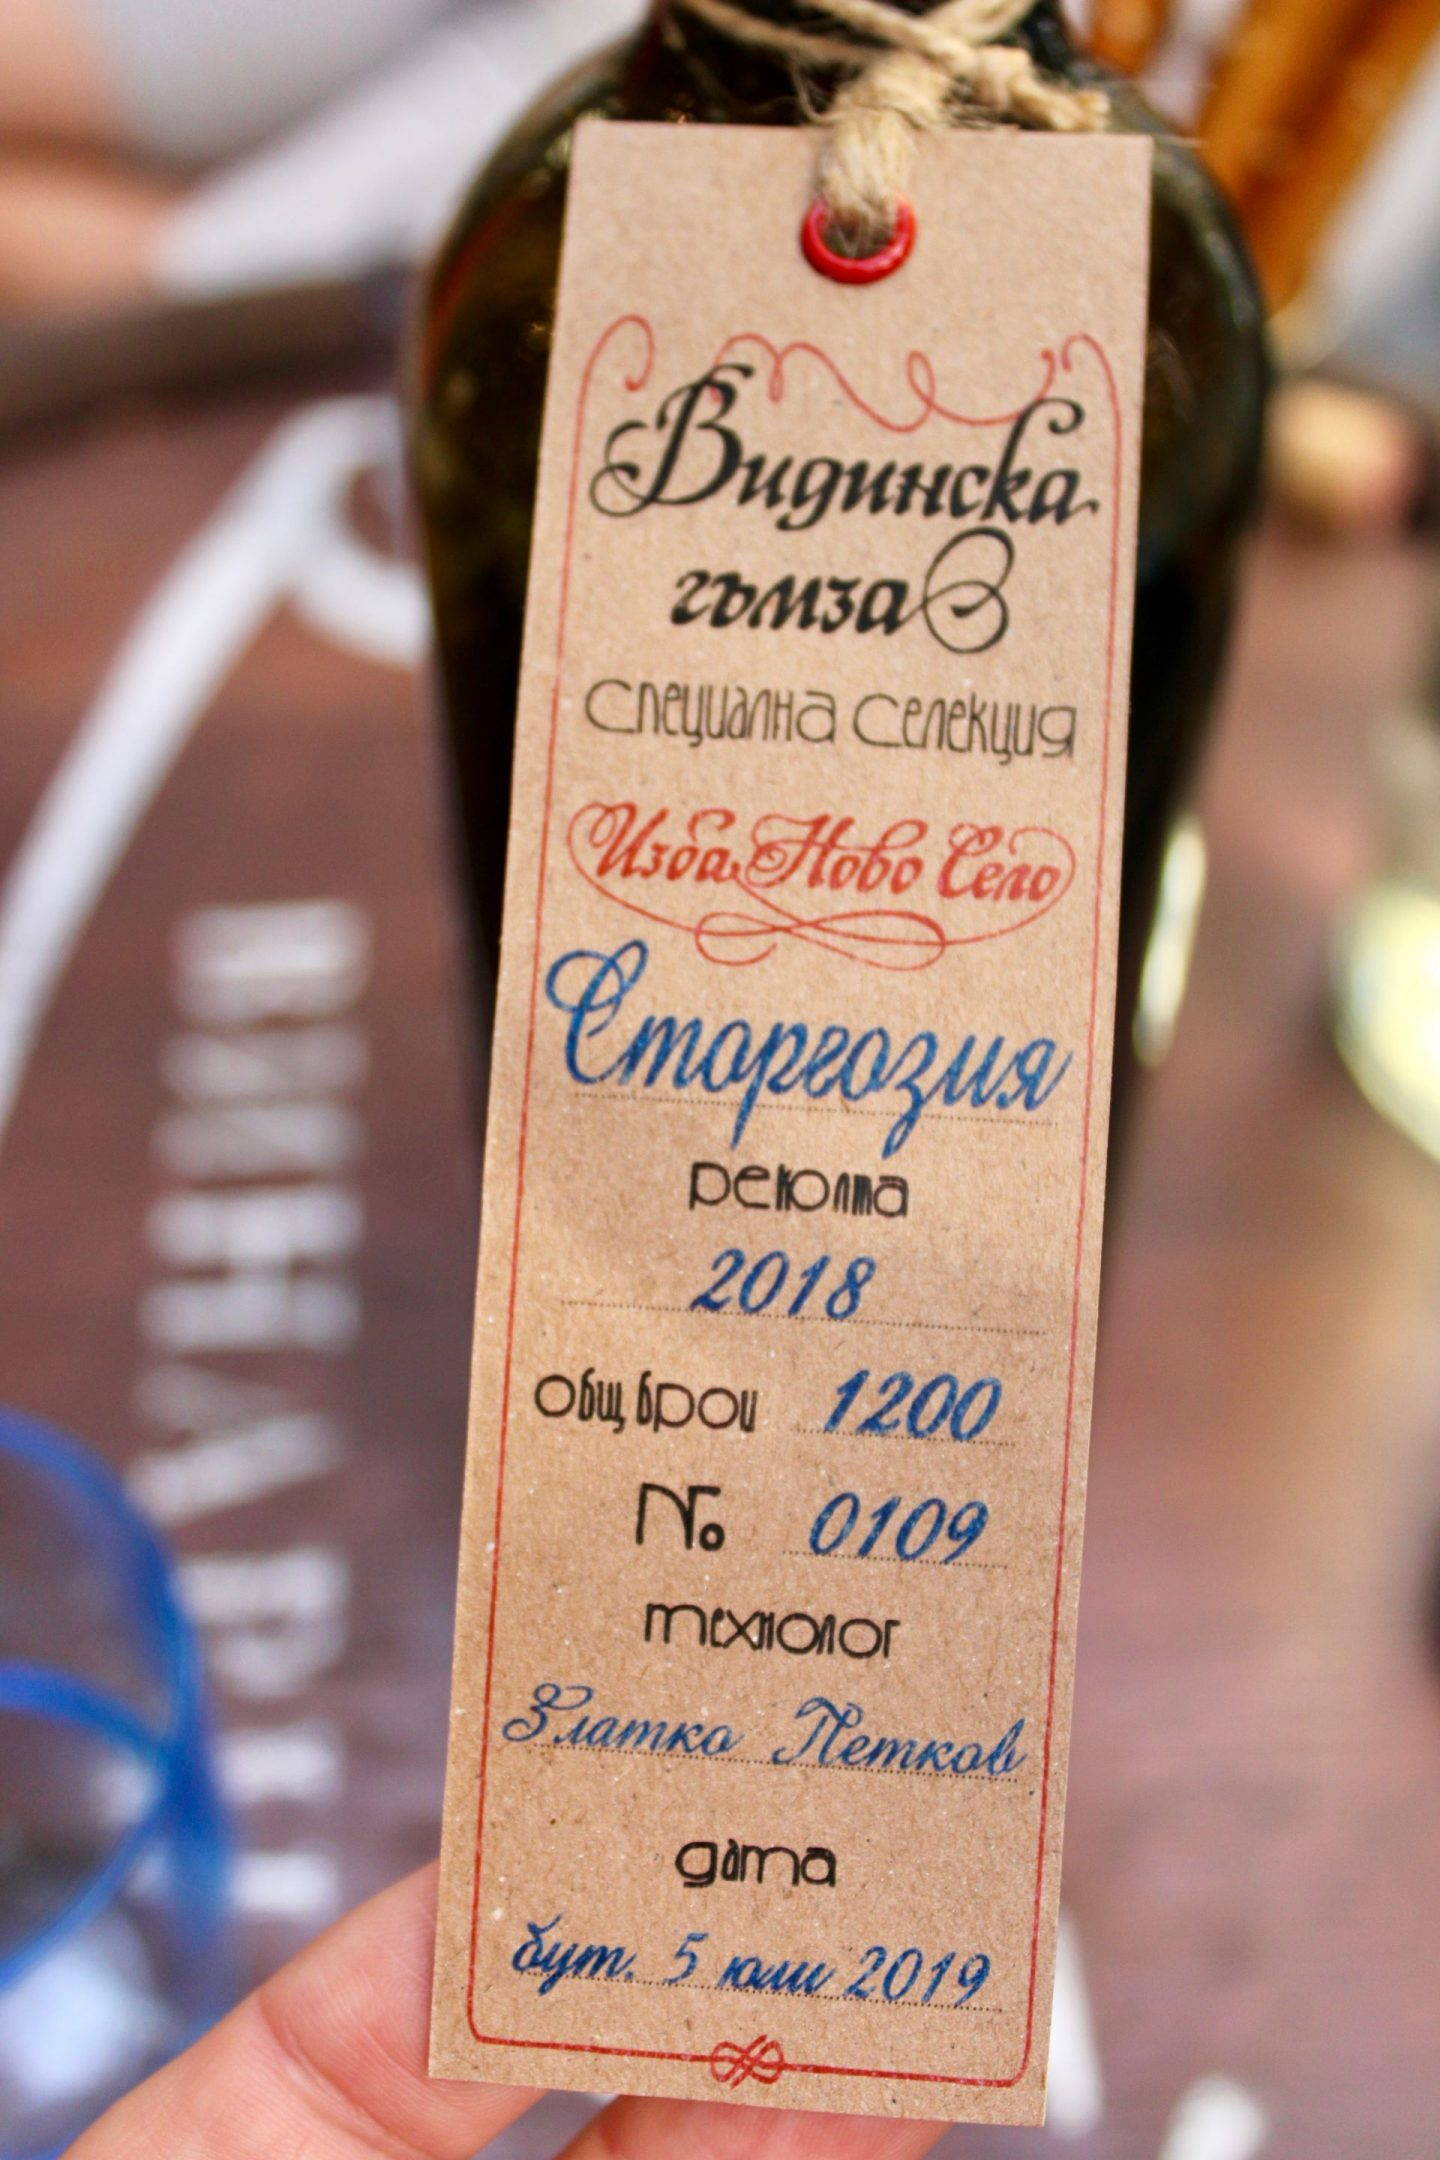 A close up of a wine label in Bulgarian